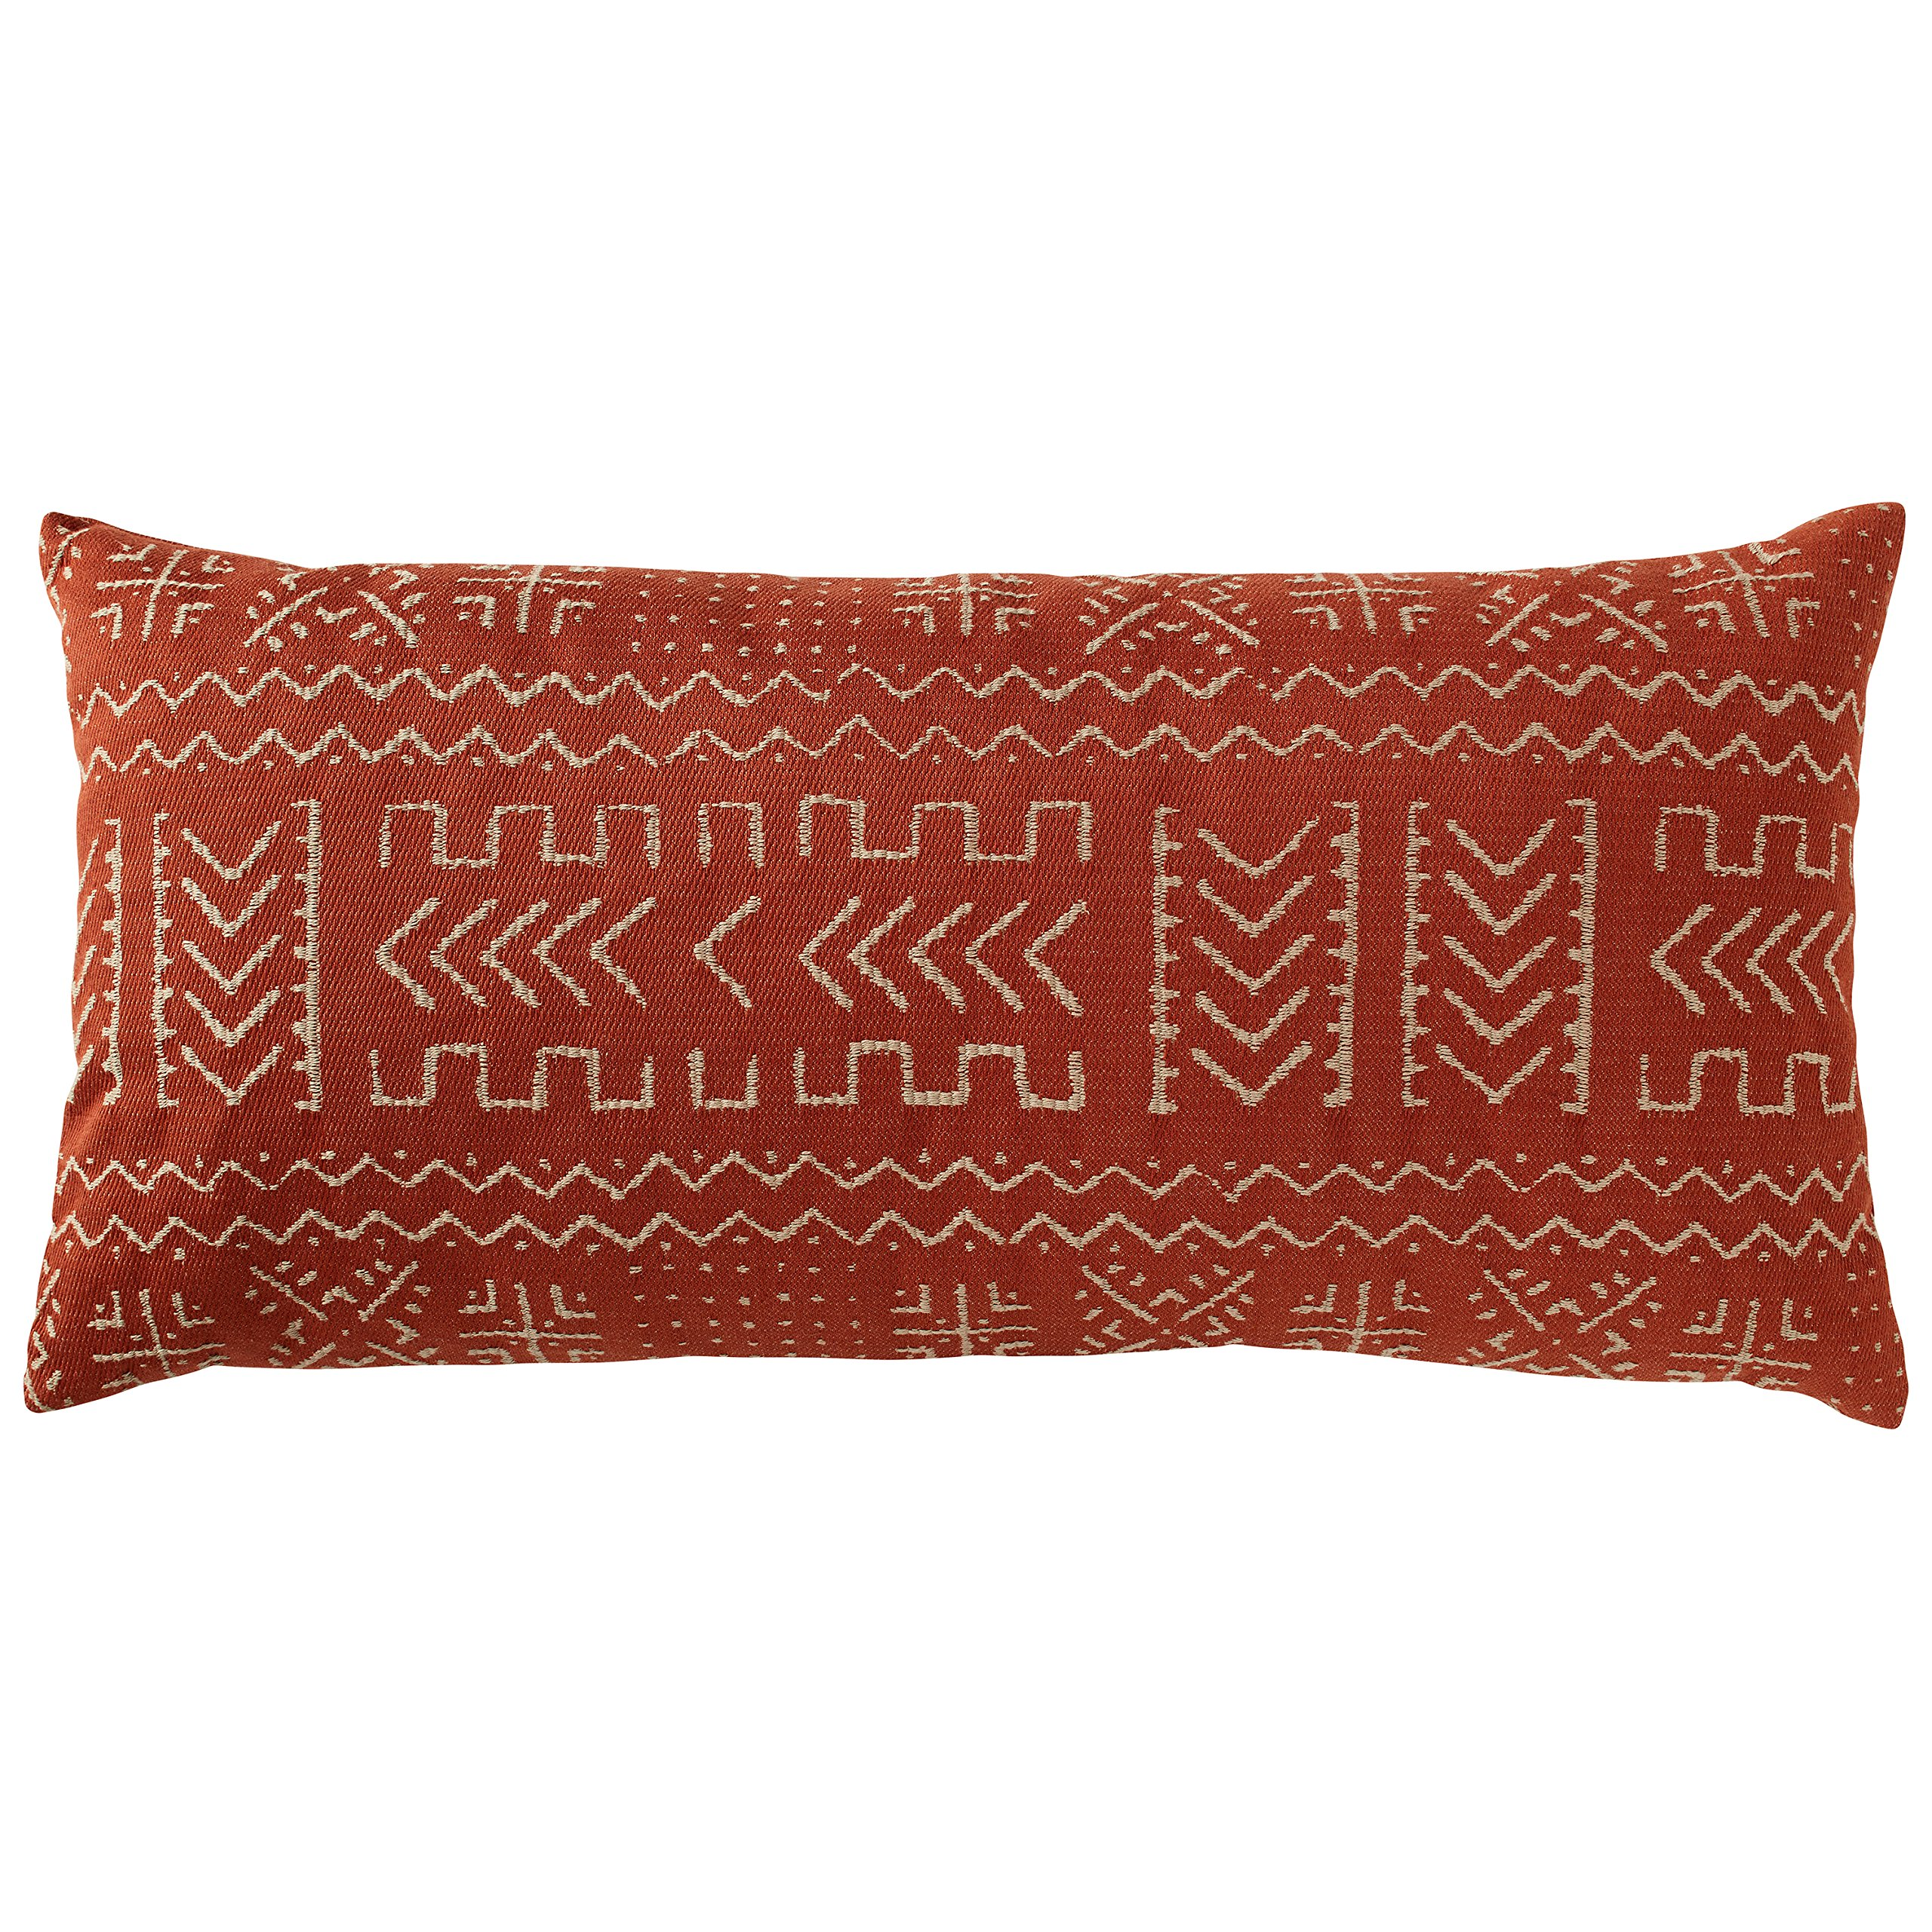 Rivet Mudcloth-Inspired Pillow, 12'' x 24'', Spice